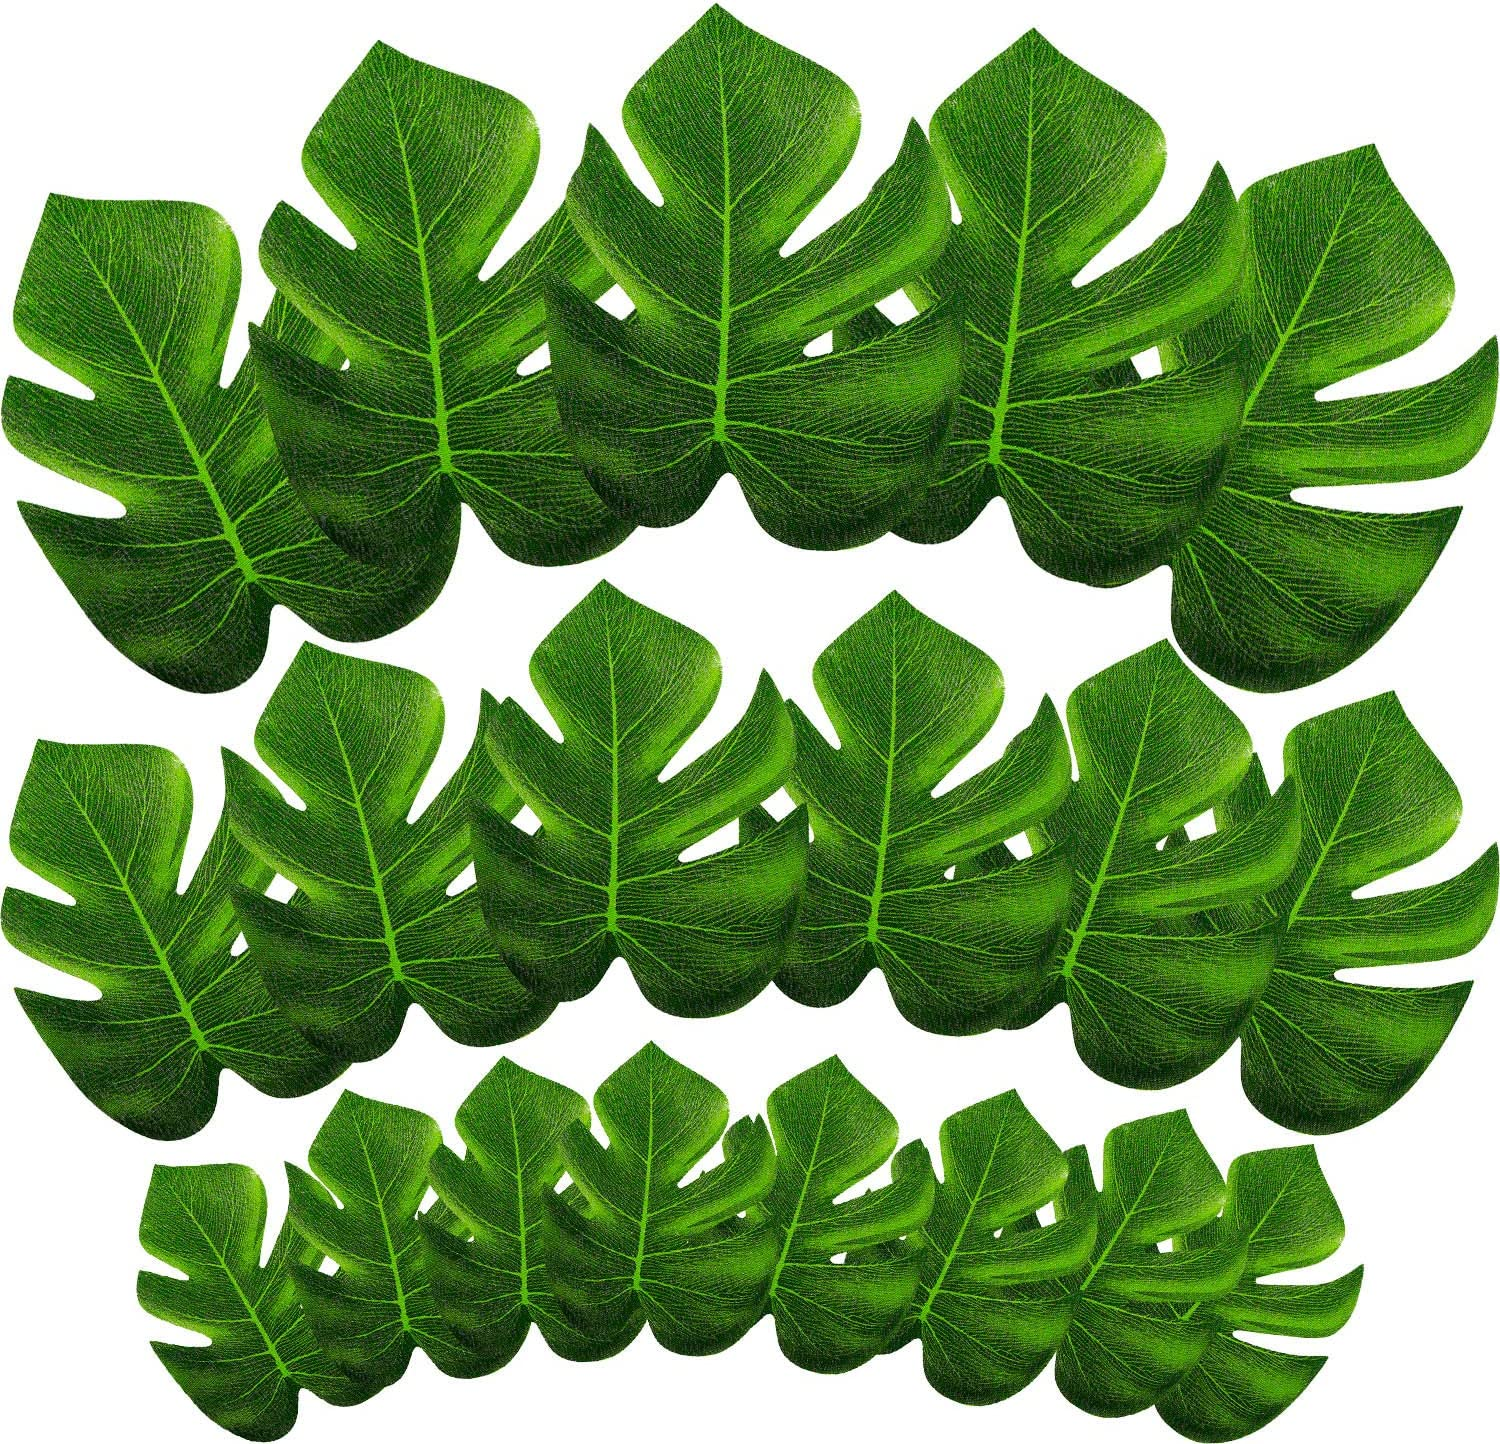 Hestya 60 Pieces Tropical Palm Leaves Artificial Tropical Plant Leaf Imitation Monstera Leaves for Hawaiian Luau Jungle Beach BBQ Party Decor, 3 Sizes